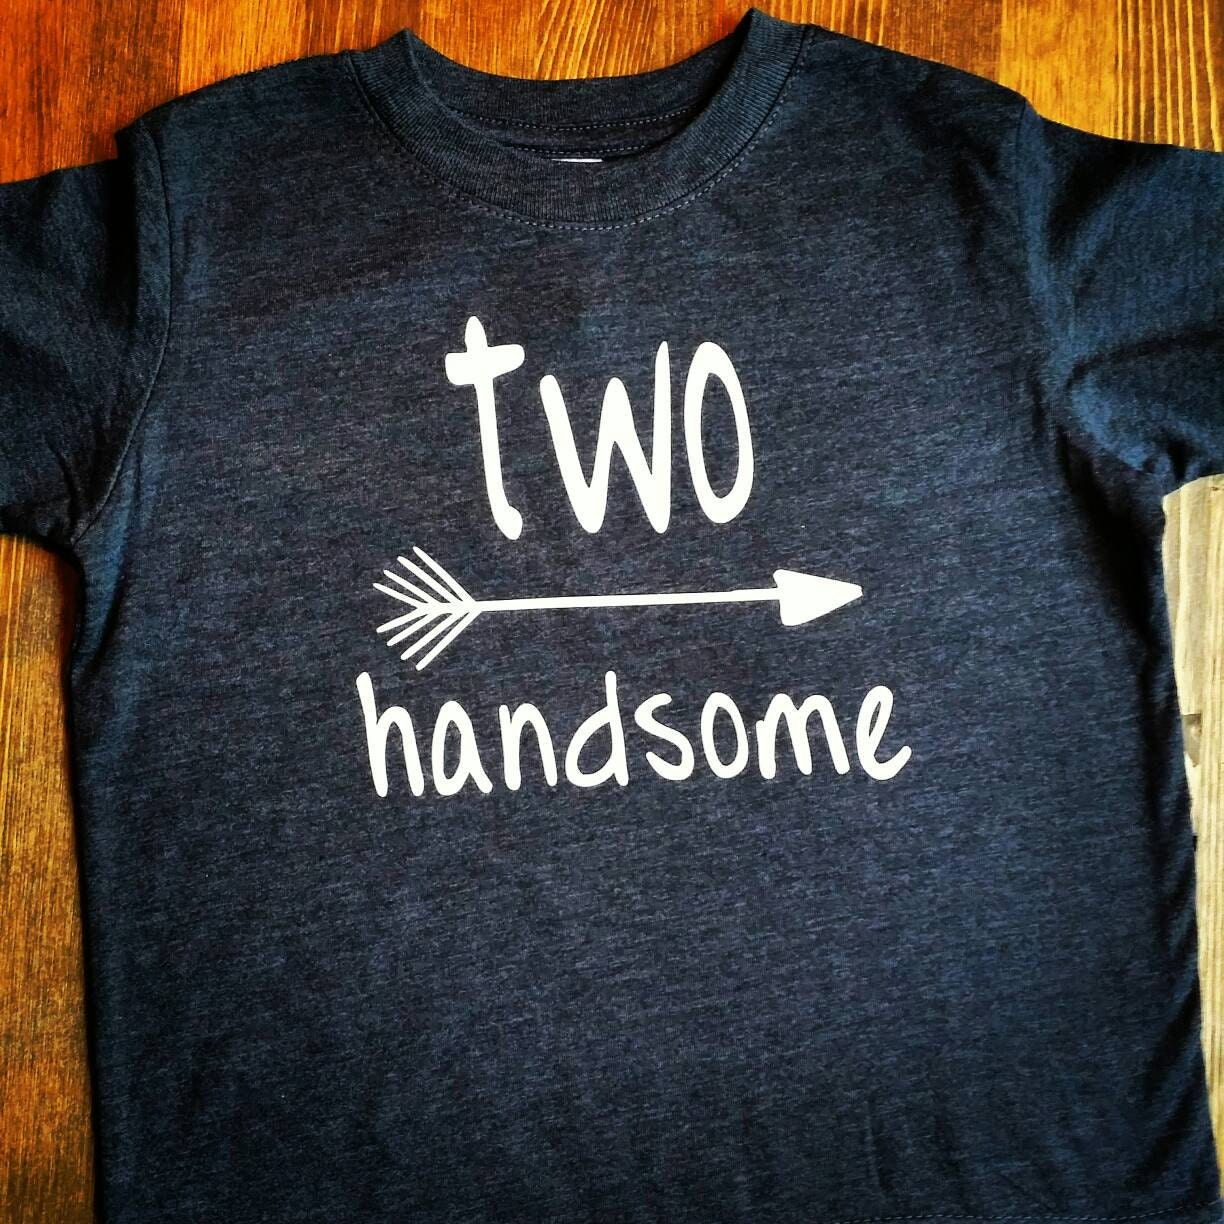 Boys 2nd Birthday Shirt Two Handsome